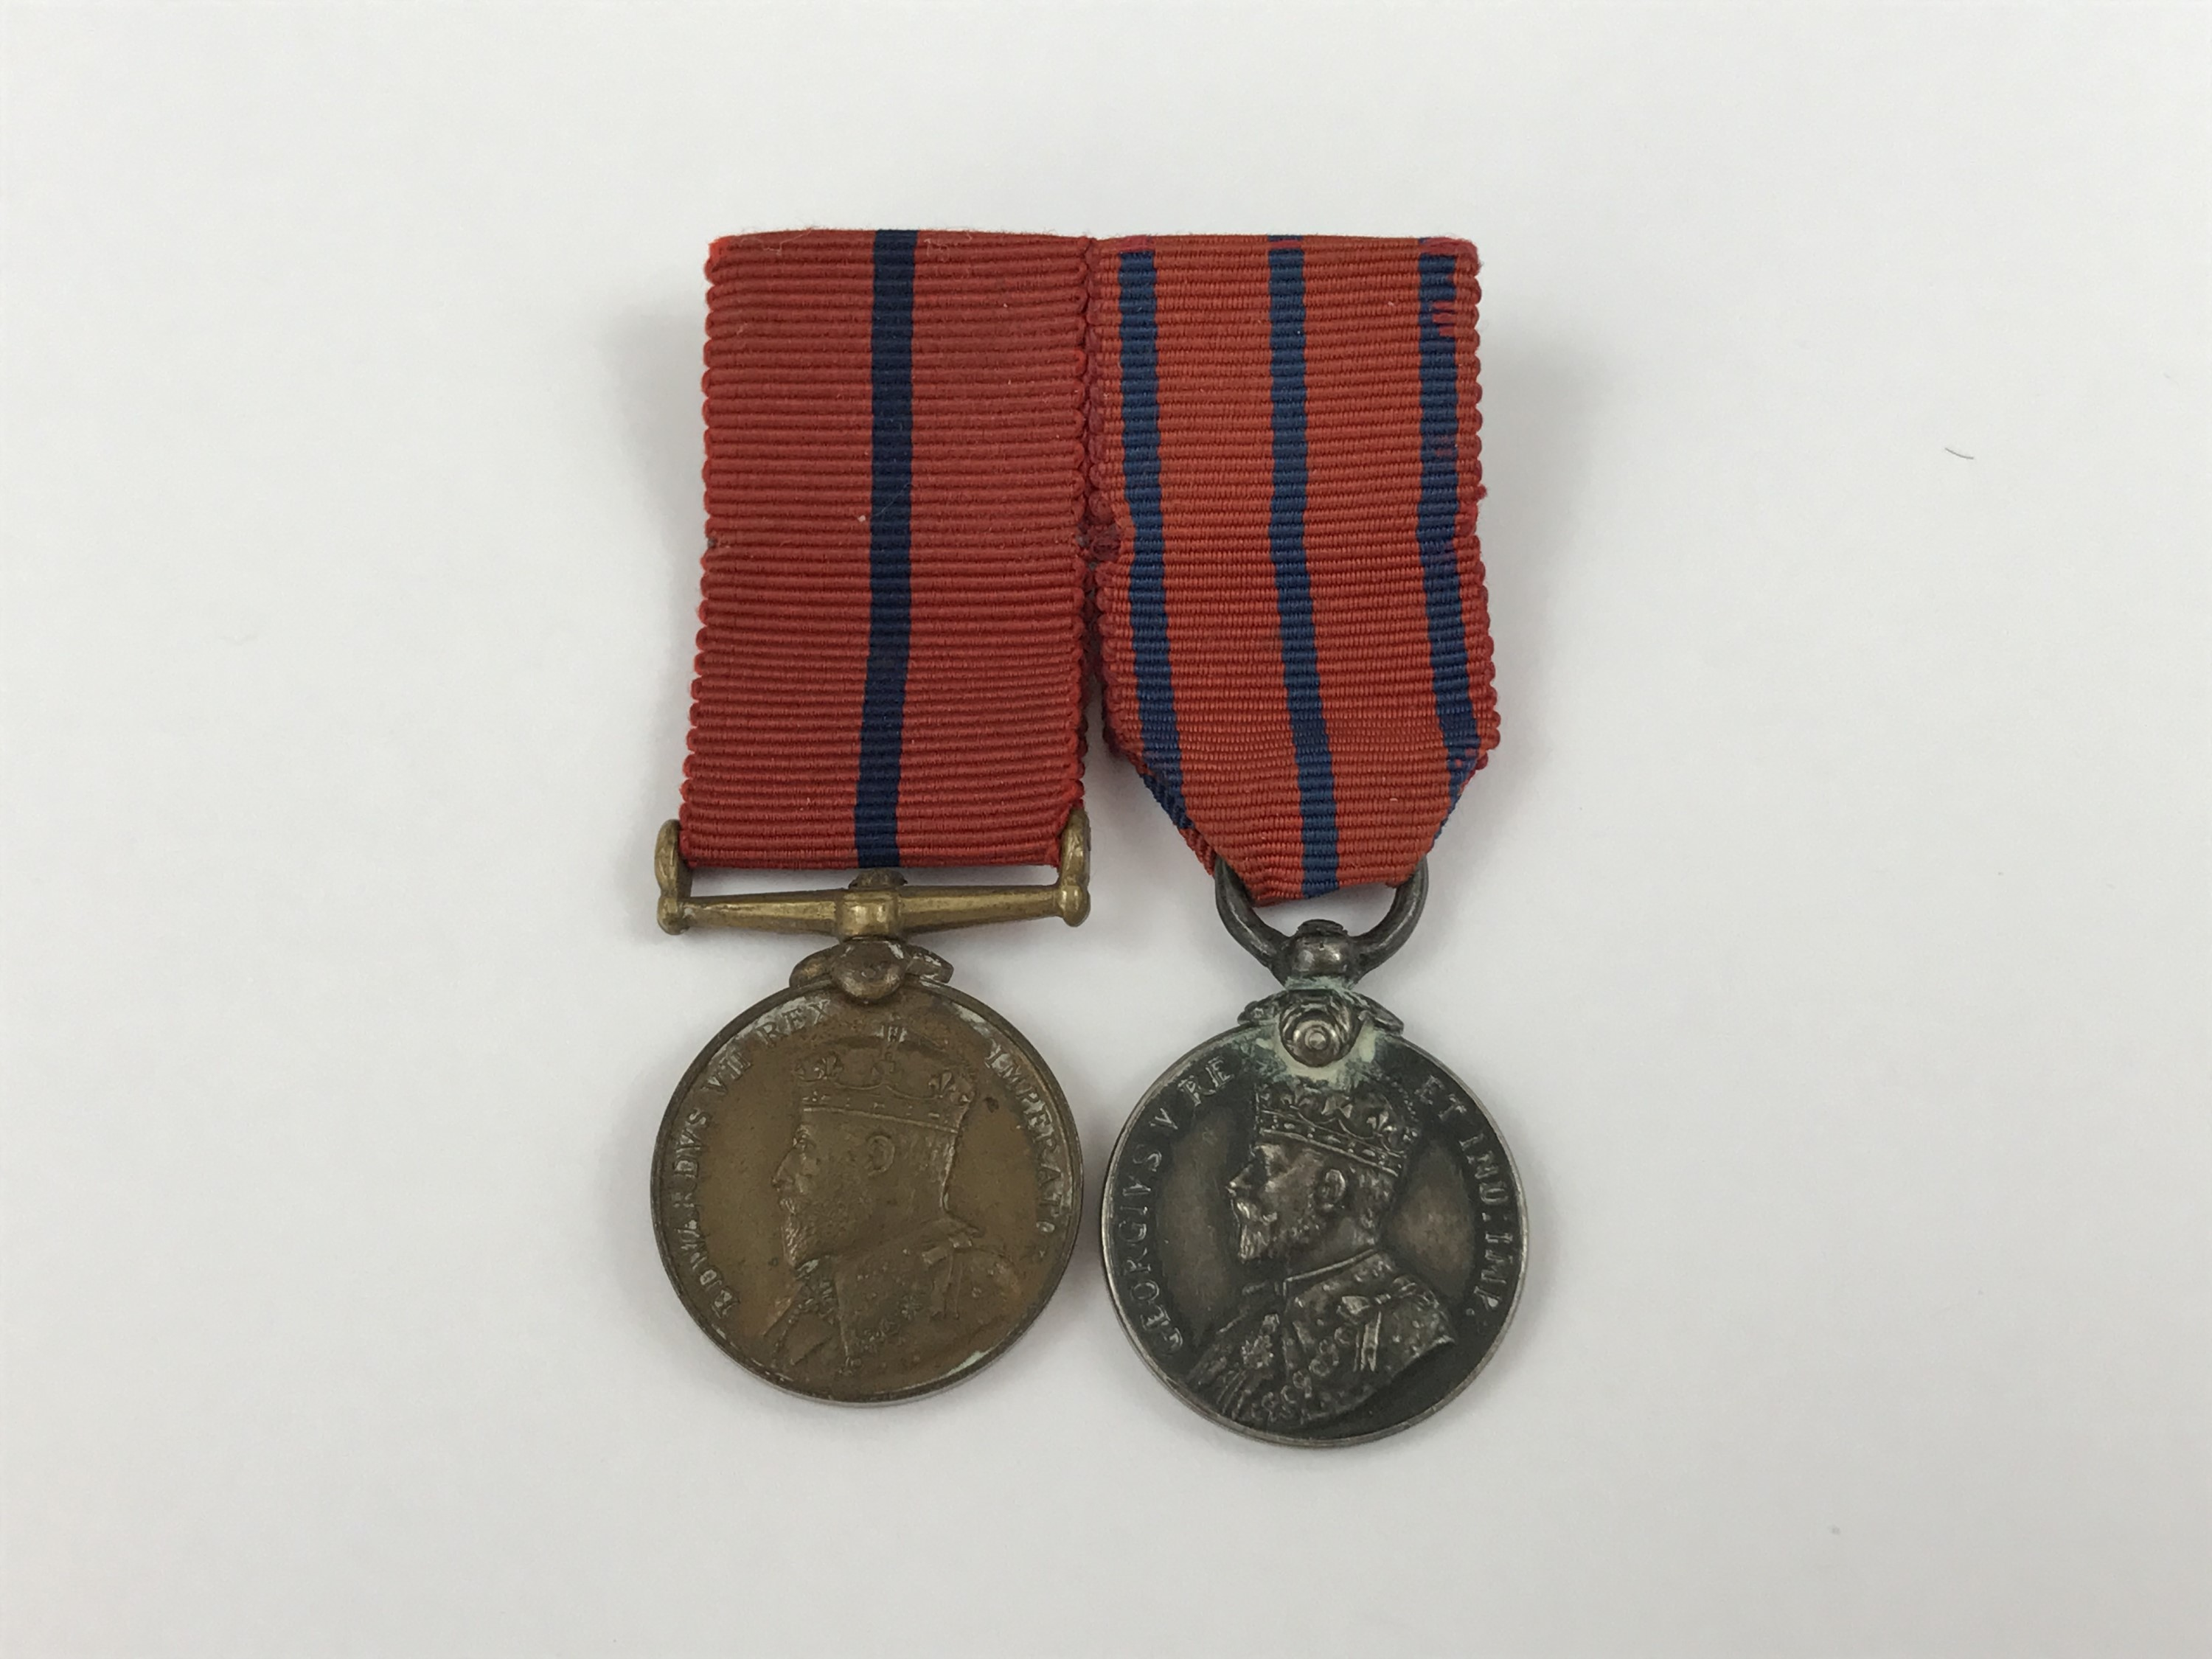 Lot 48 - A mounted pair of Metropolitan Police royal commemorative medal miniatures commemorating the